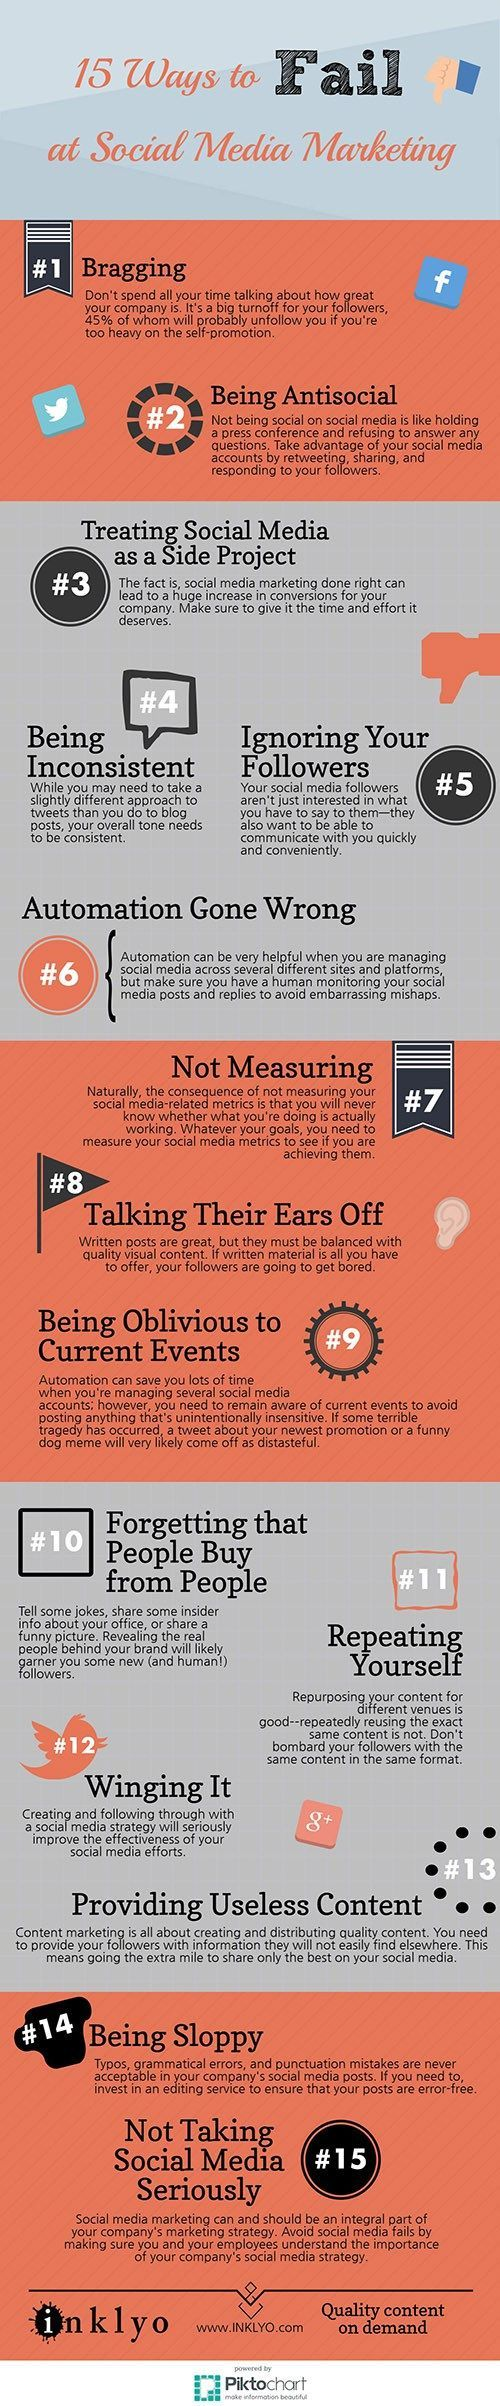 15 Ways To Fail At Social Media Marketing - If you are doing any of the things listed on this infographic, you are failing at social media marketing. If you do, then it's time for a change! - #infographic